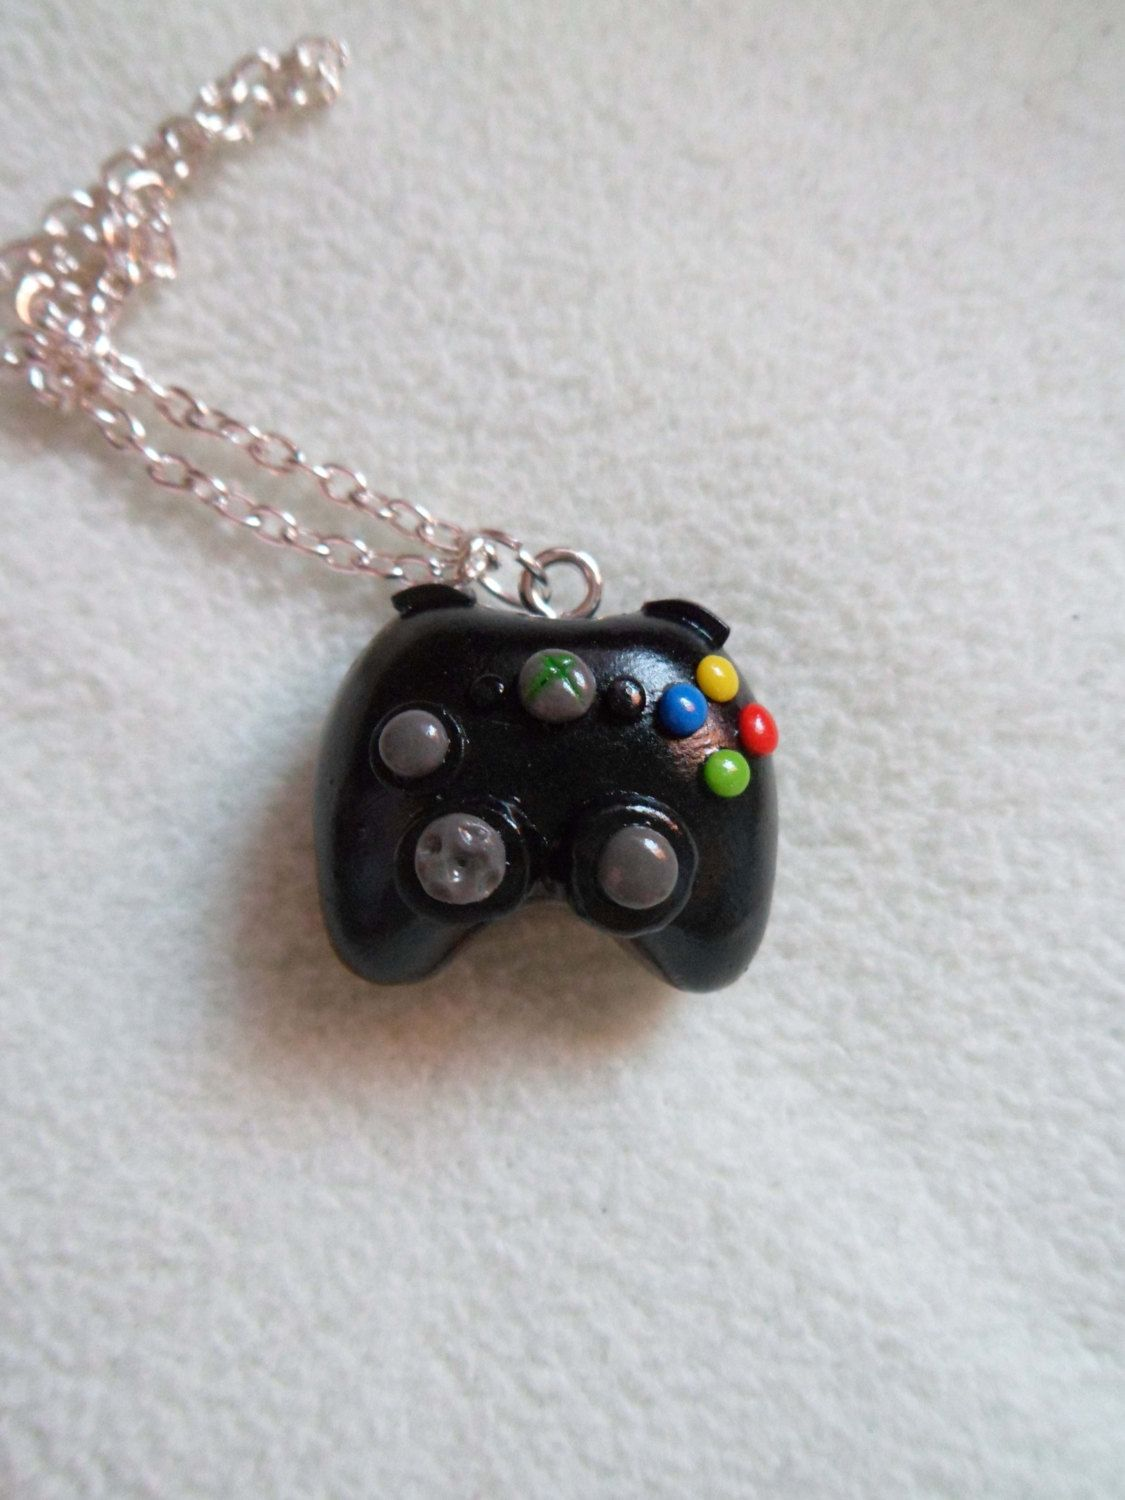 Xbox controller necklace. So cute!